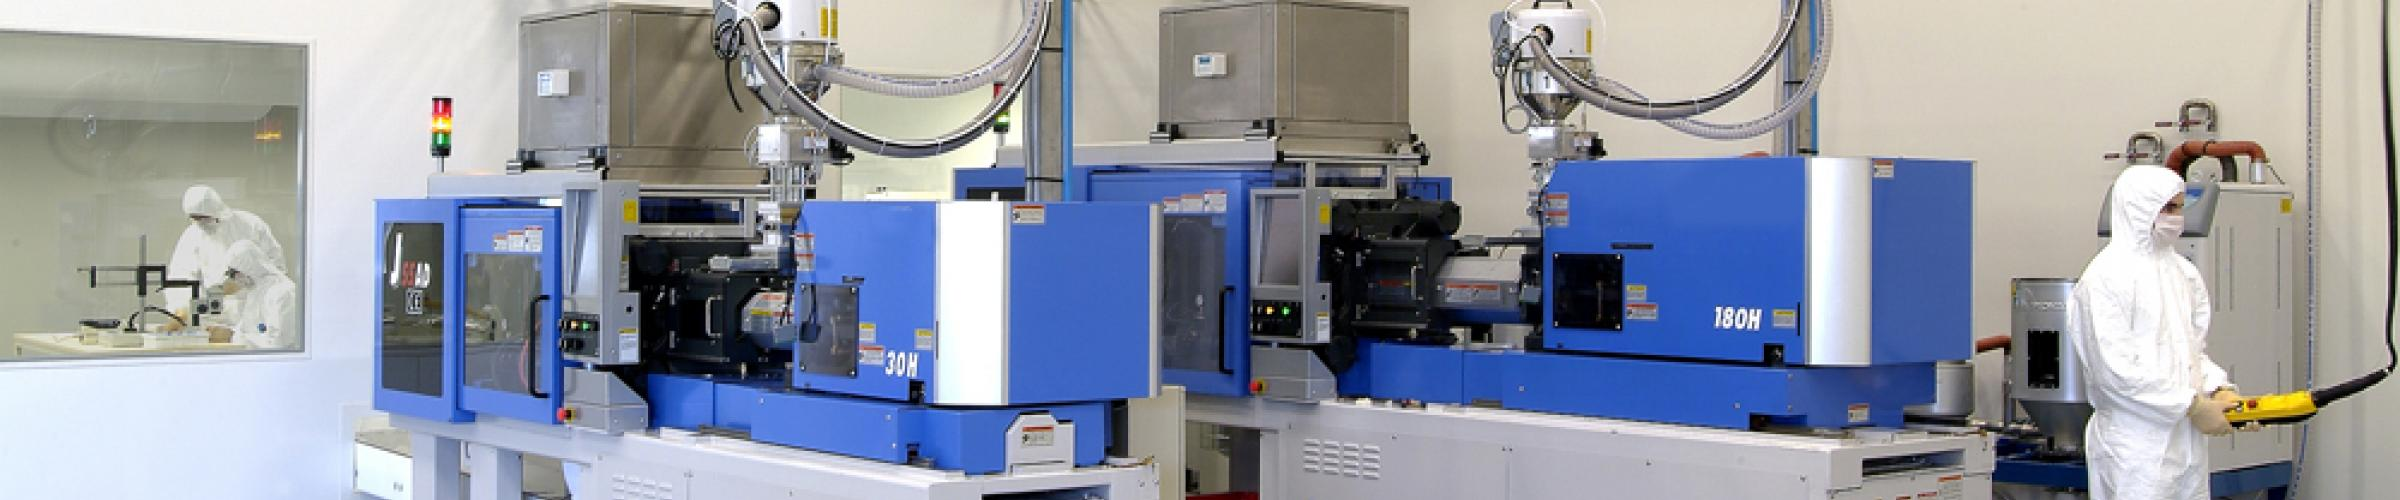 Plastics Injection Moulding Monitoring